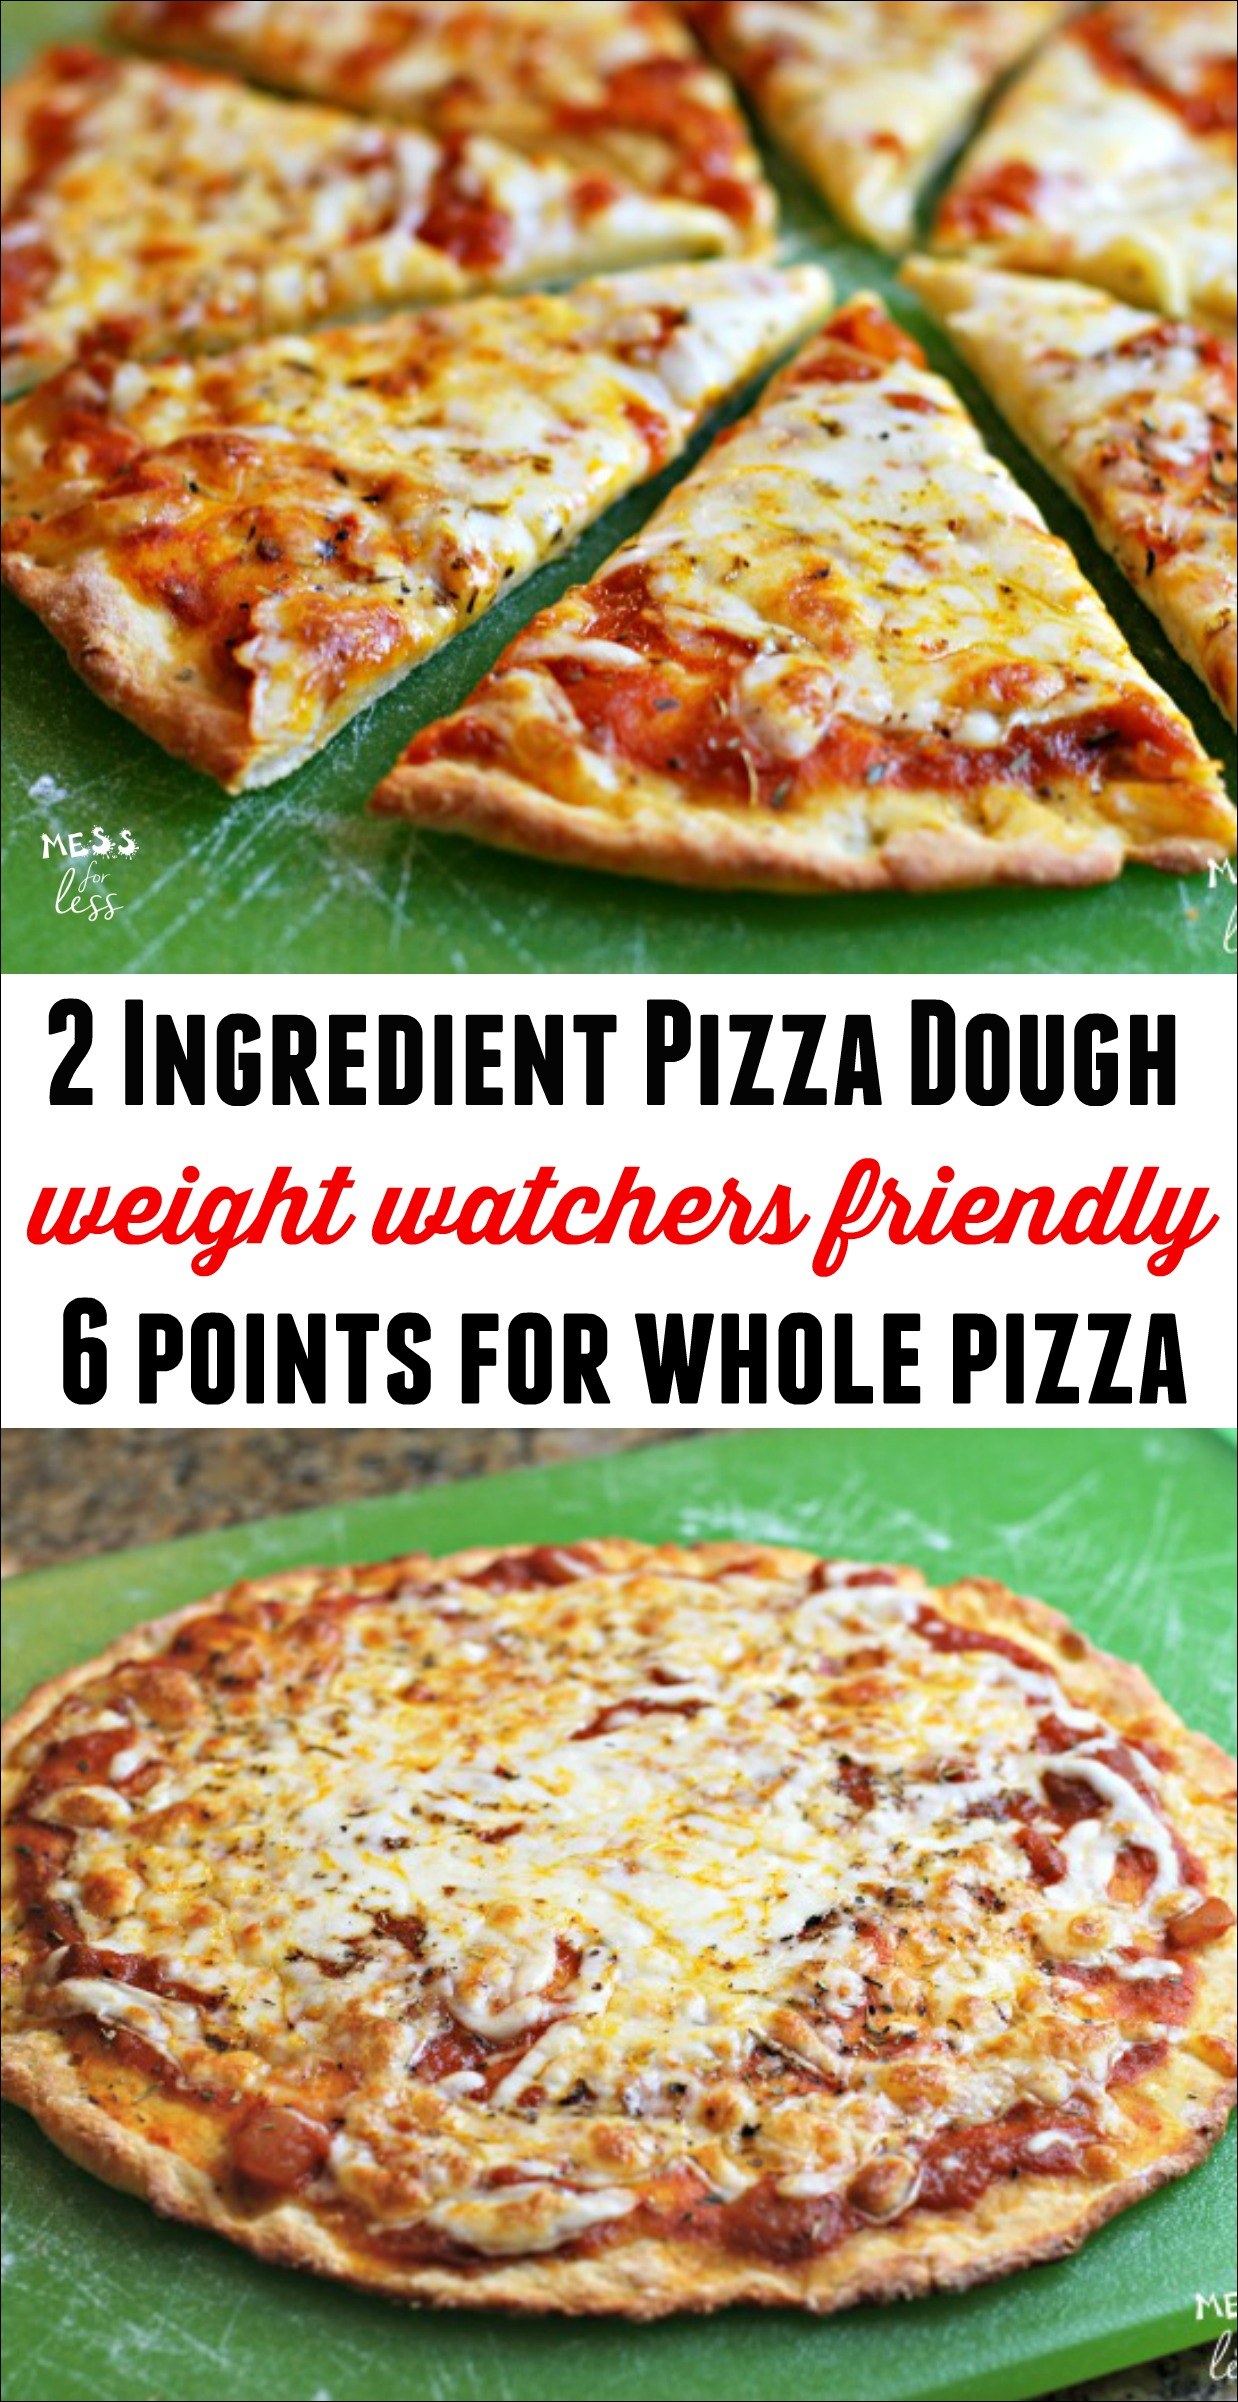 2 Ingredient Pizza Dough Keeprecipes Your Universal